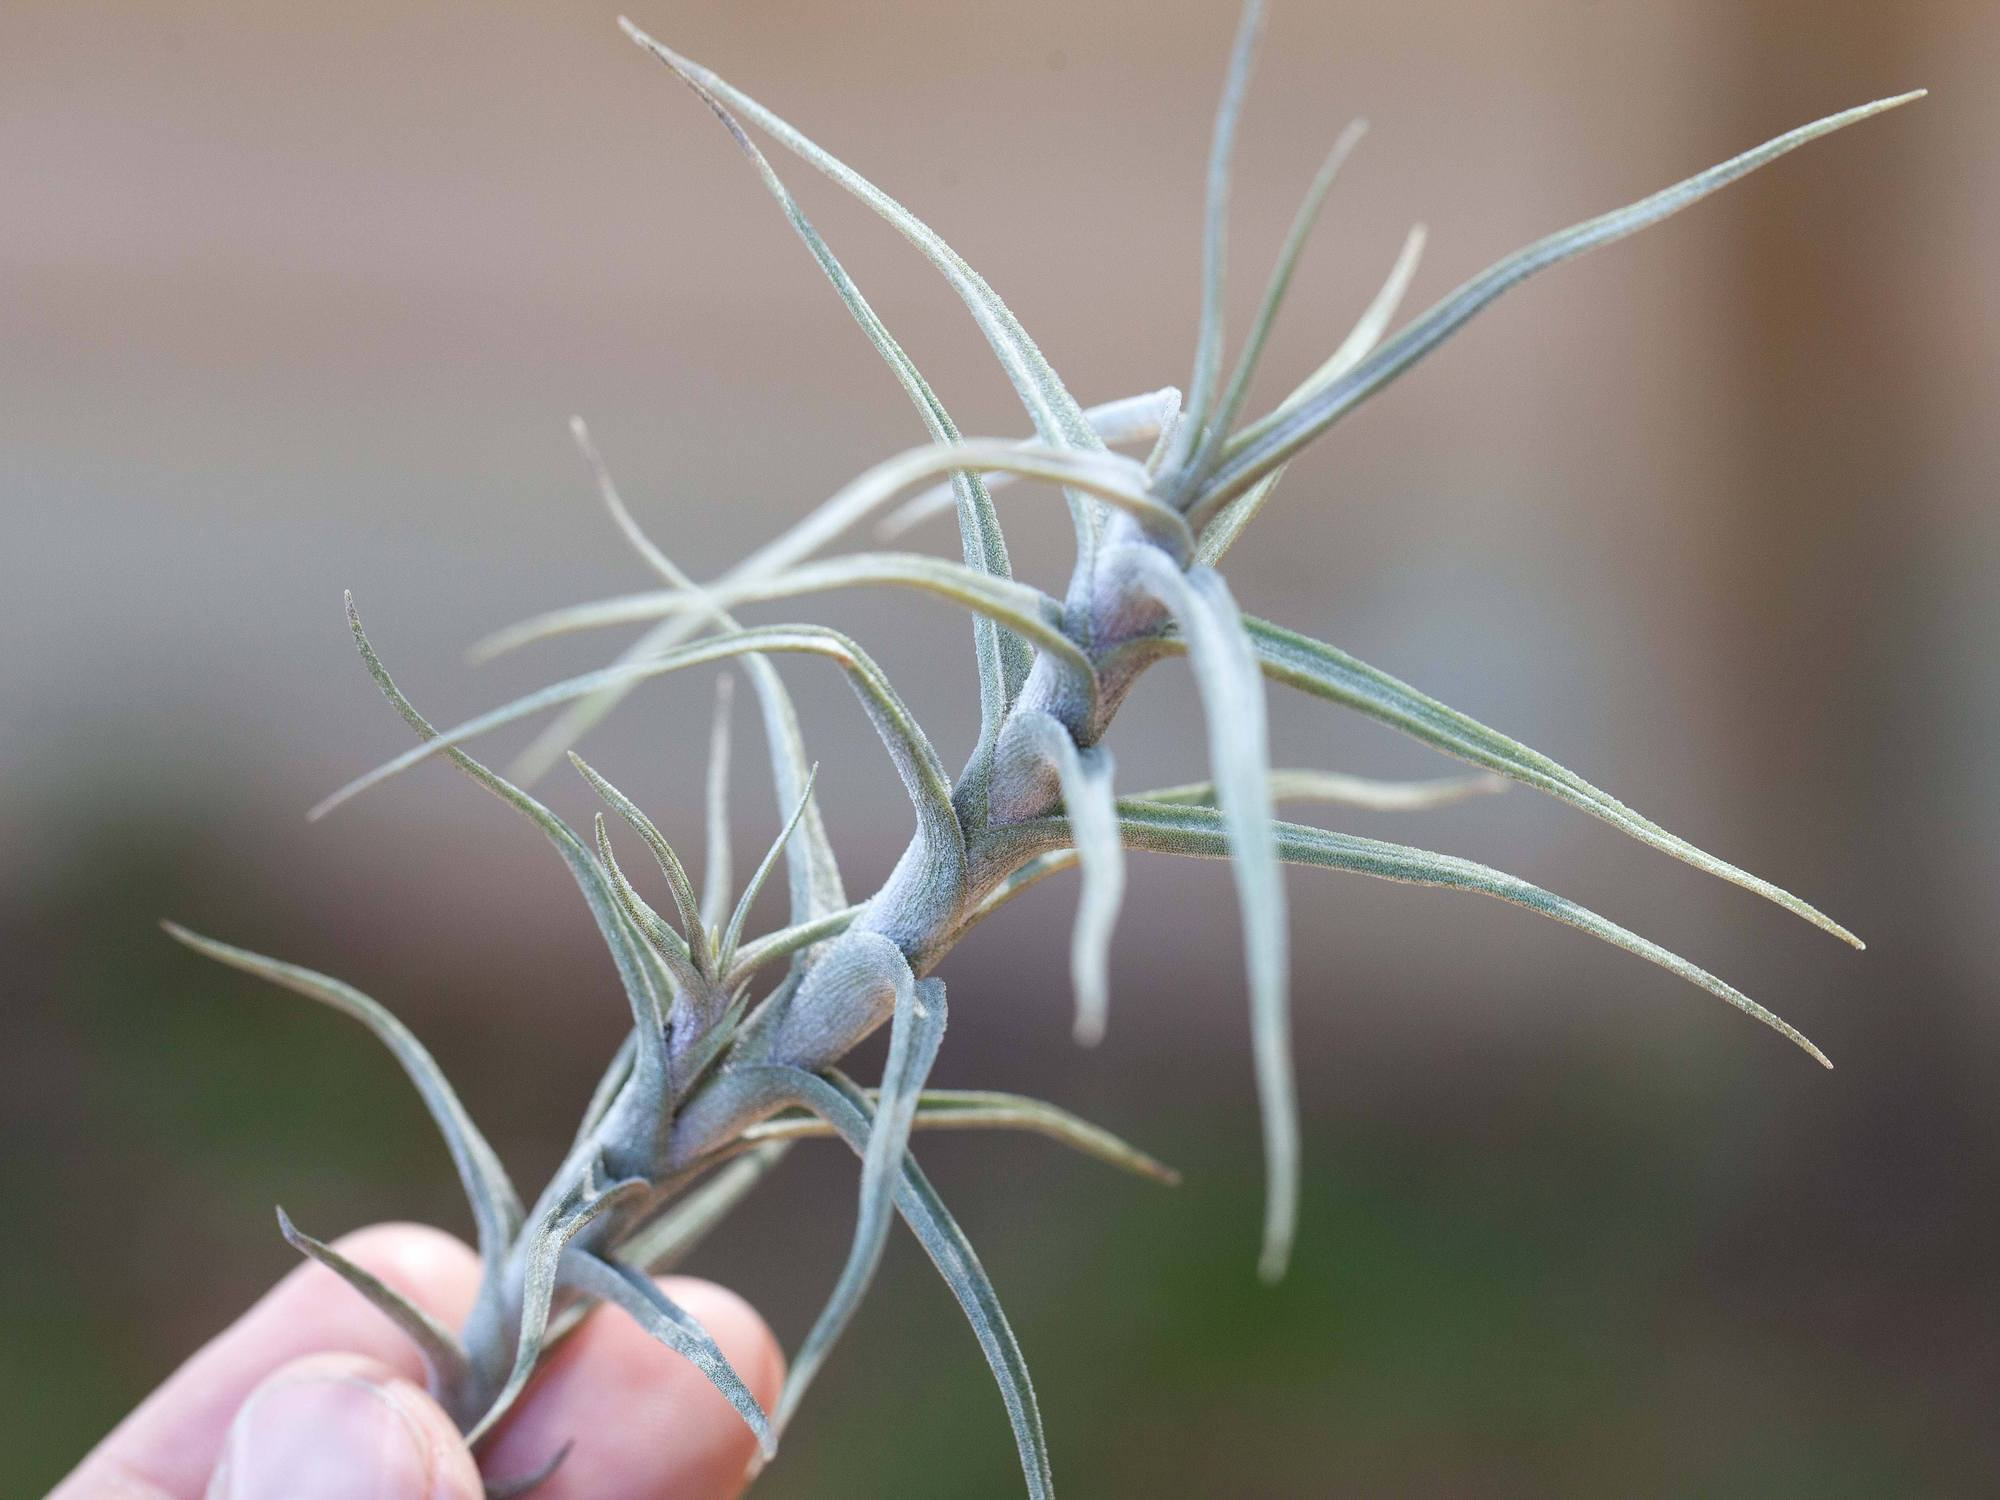 Drought-Tolerant Tillandsia: The Best Air Plants For Drier Climates